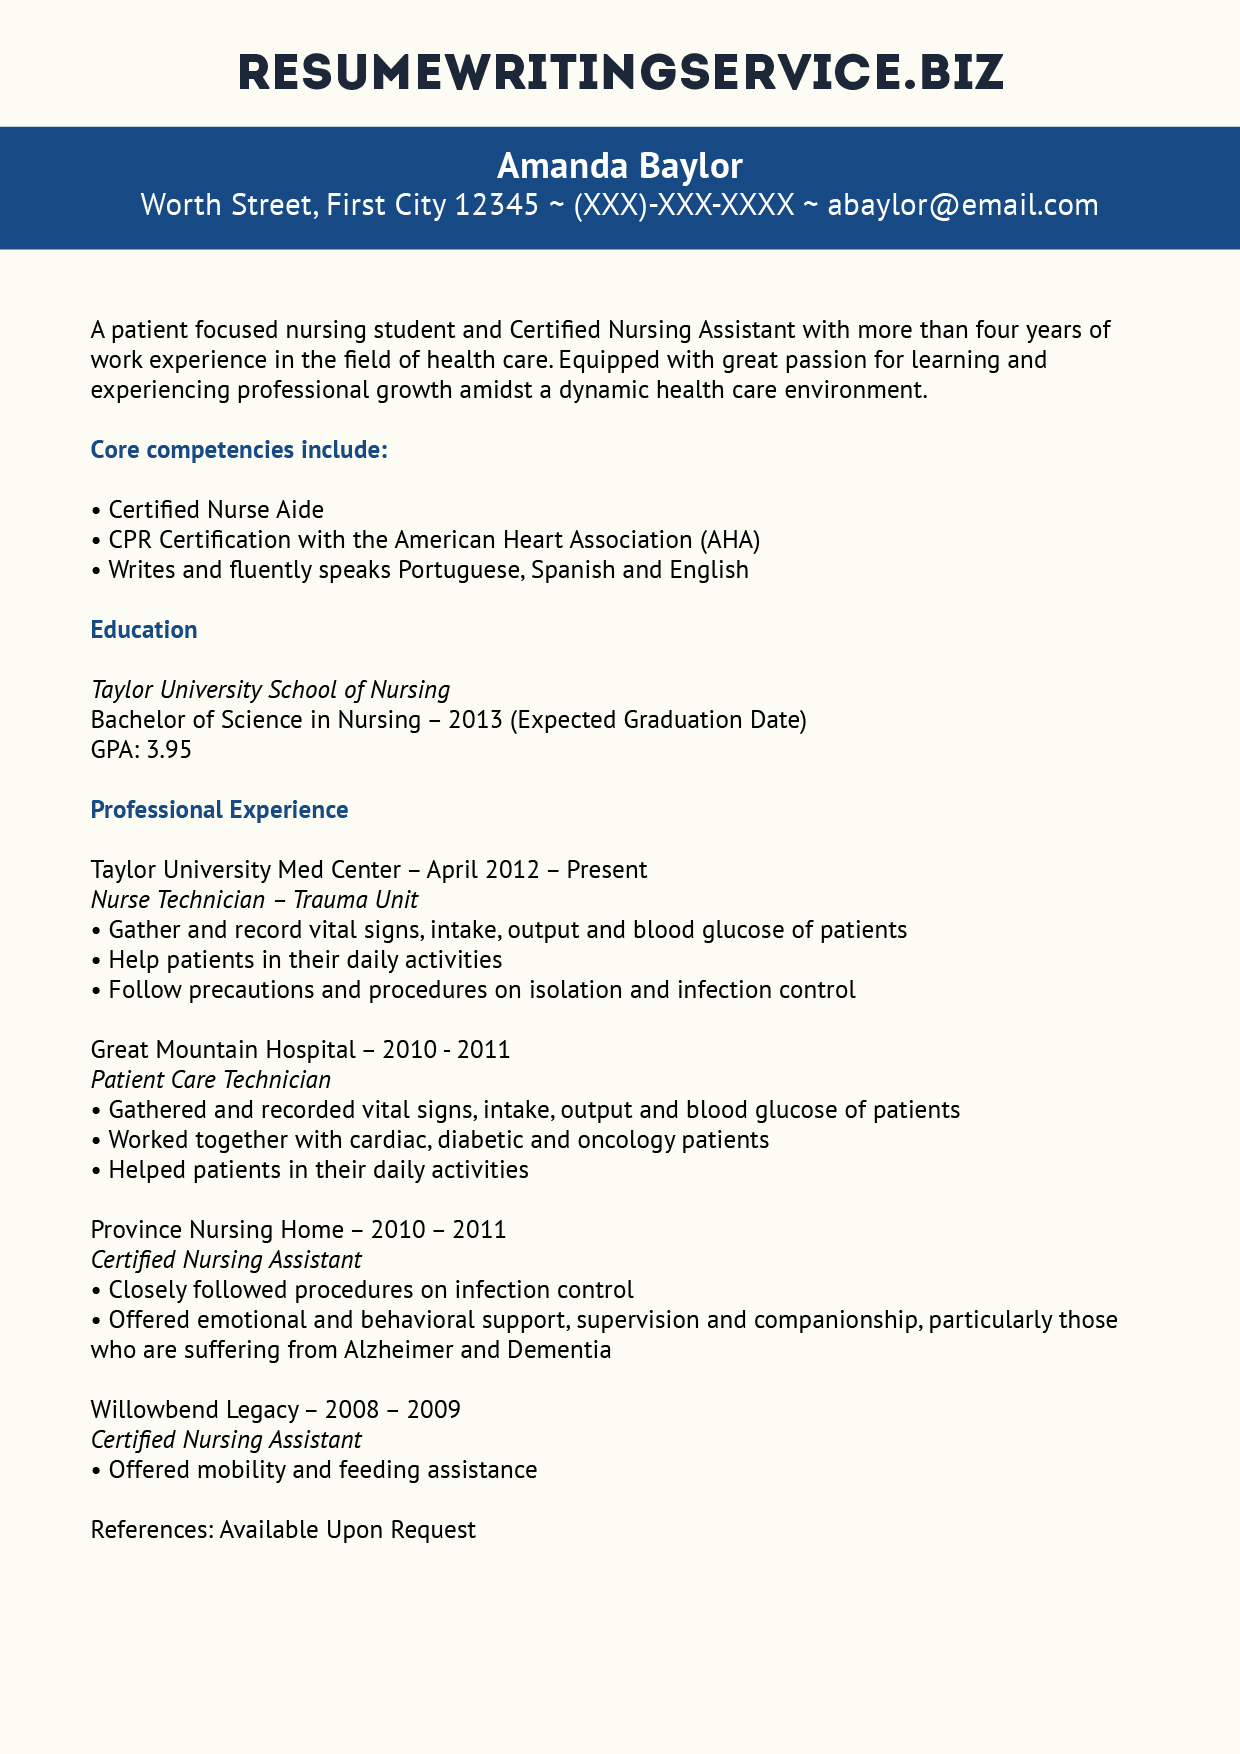 Great Nursing Student Resume Sample Resume Writing Service